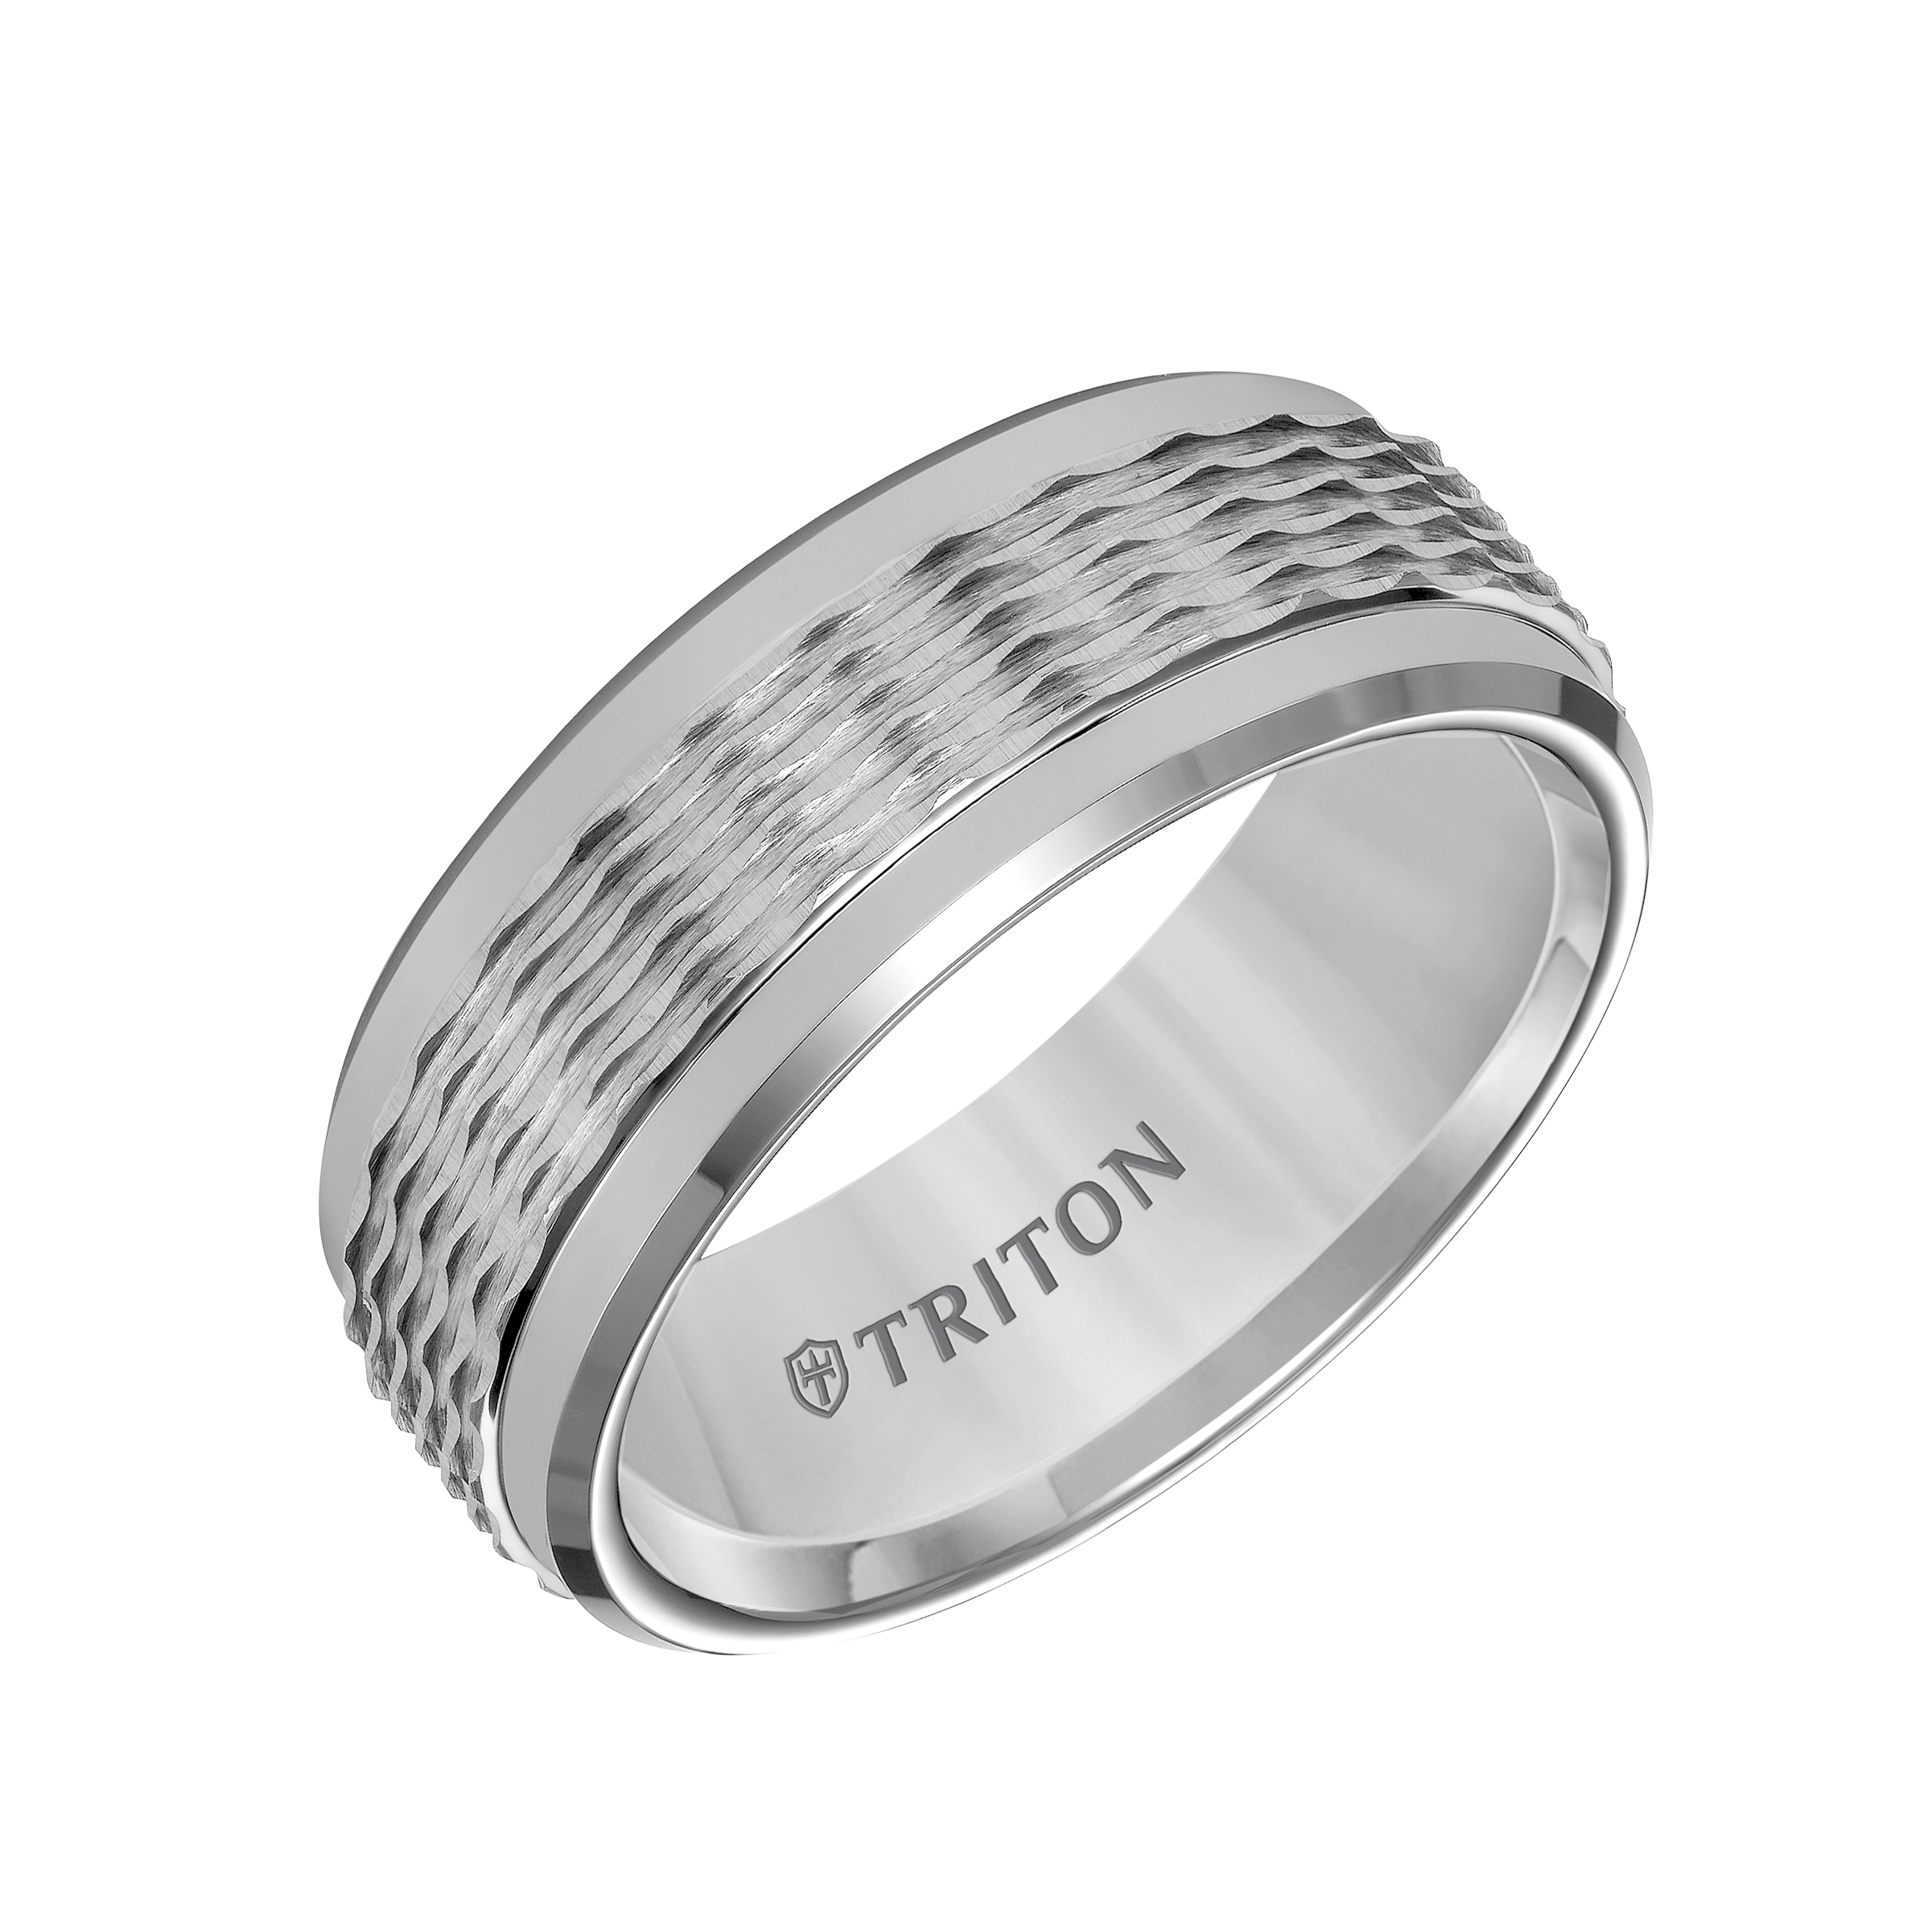 inspiration style excellent and design questions to bands at tungsten ring amp wedding mens carbide creative photo rings ideas ask gallery triton